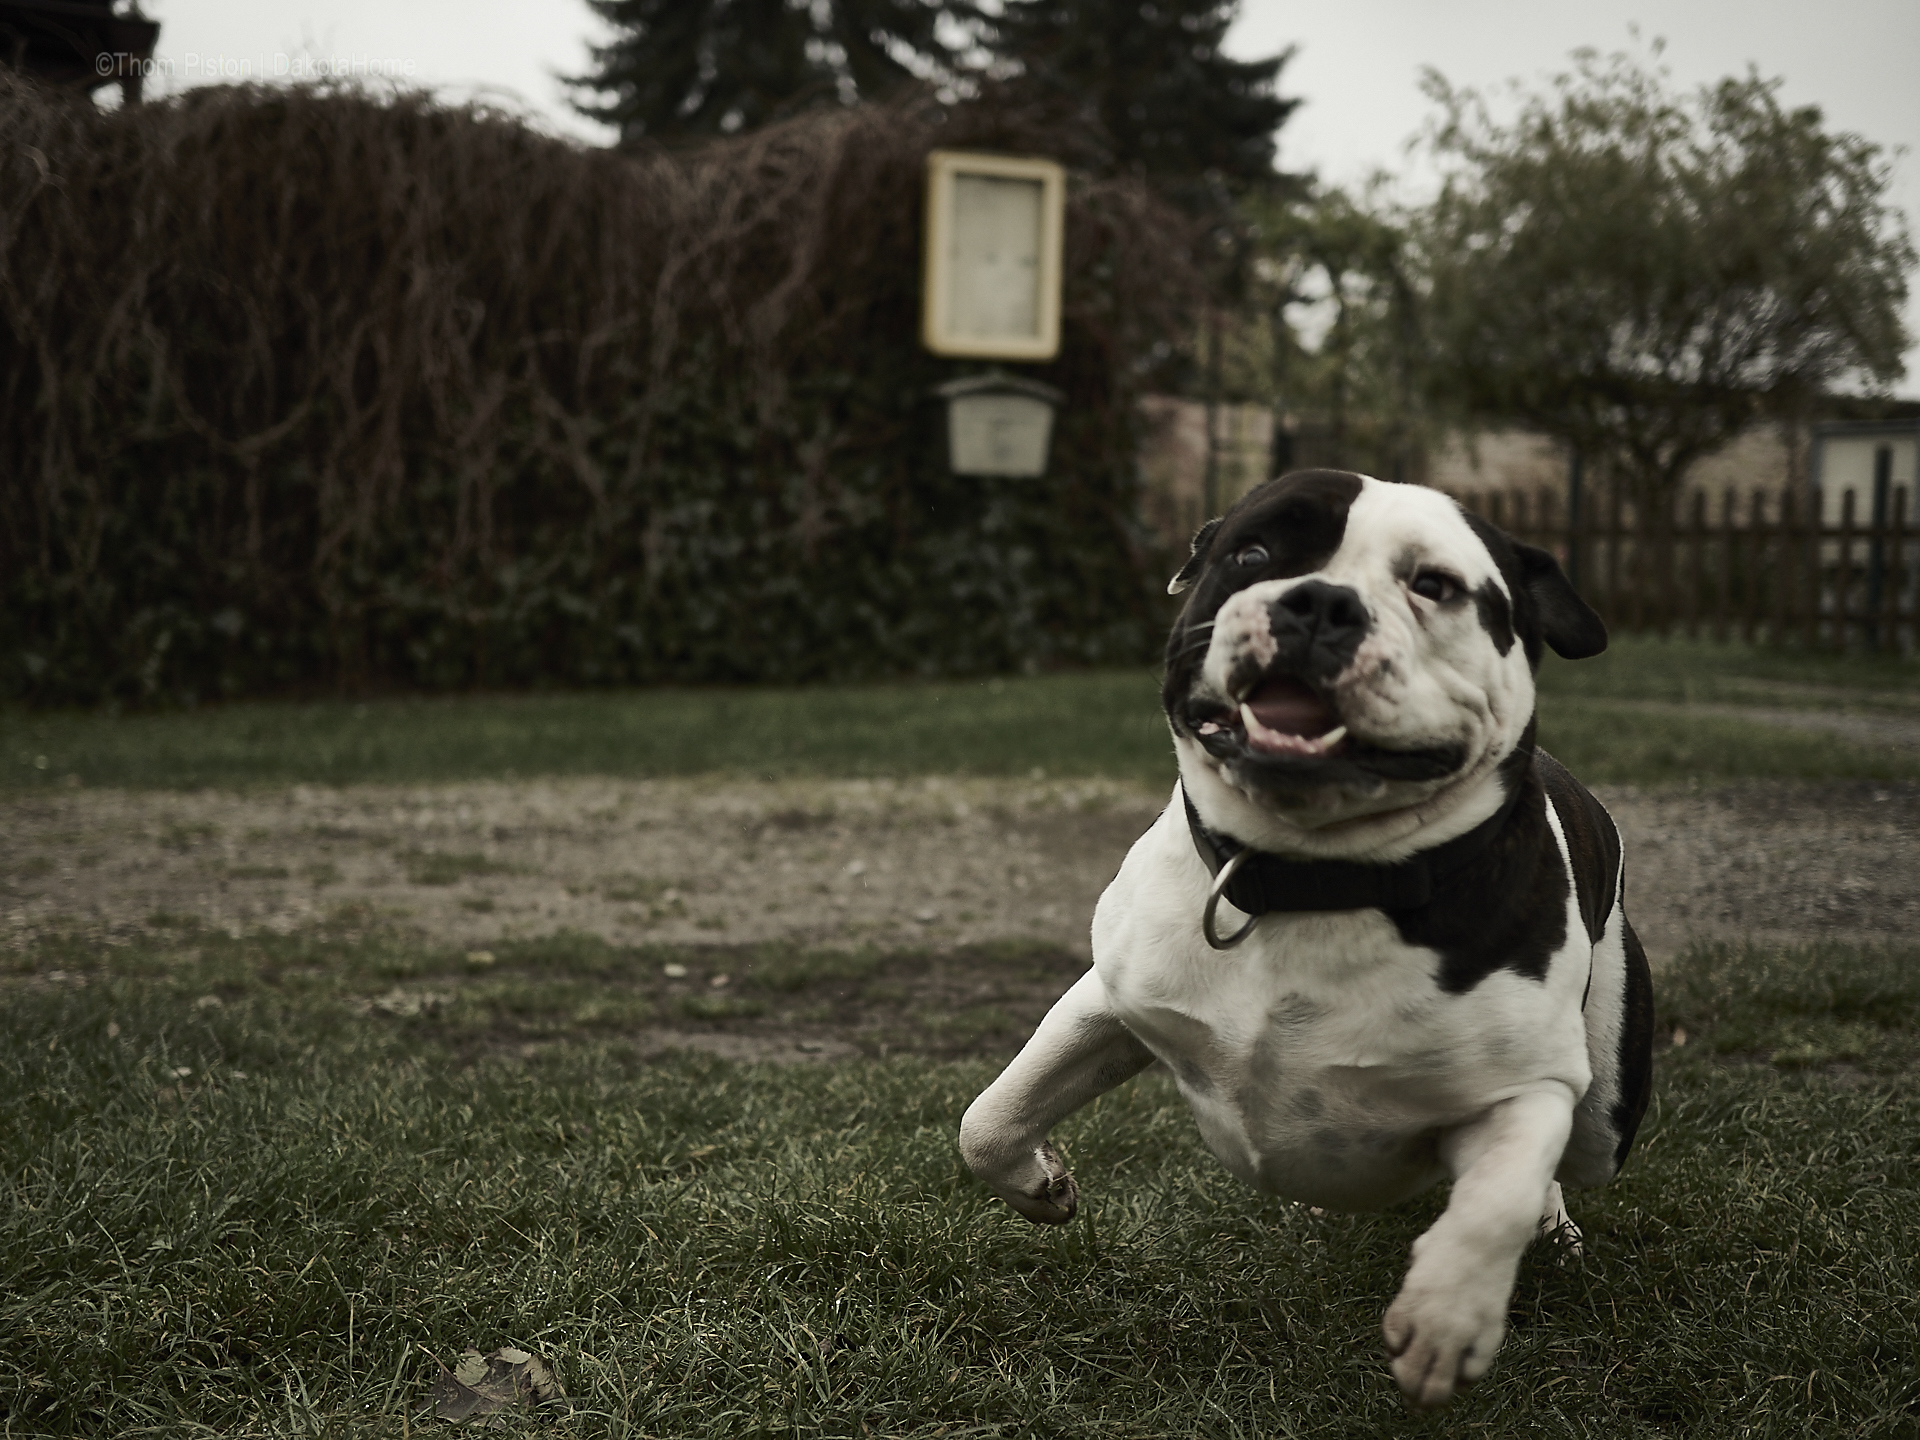 Olde British Bulldog in Action